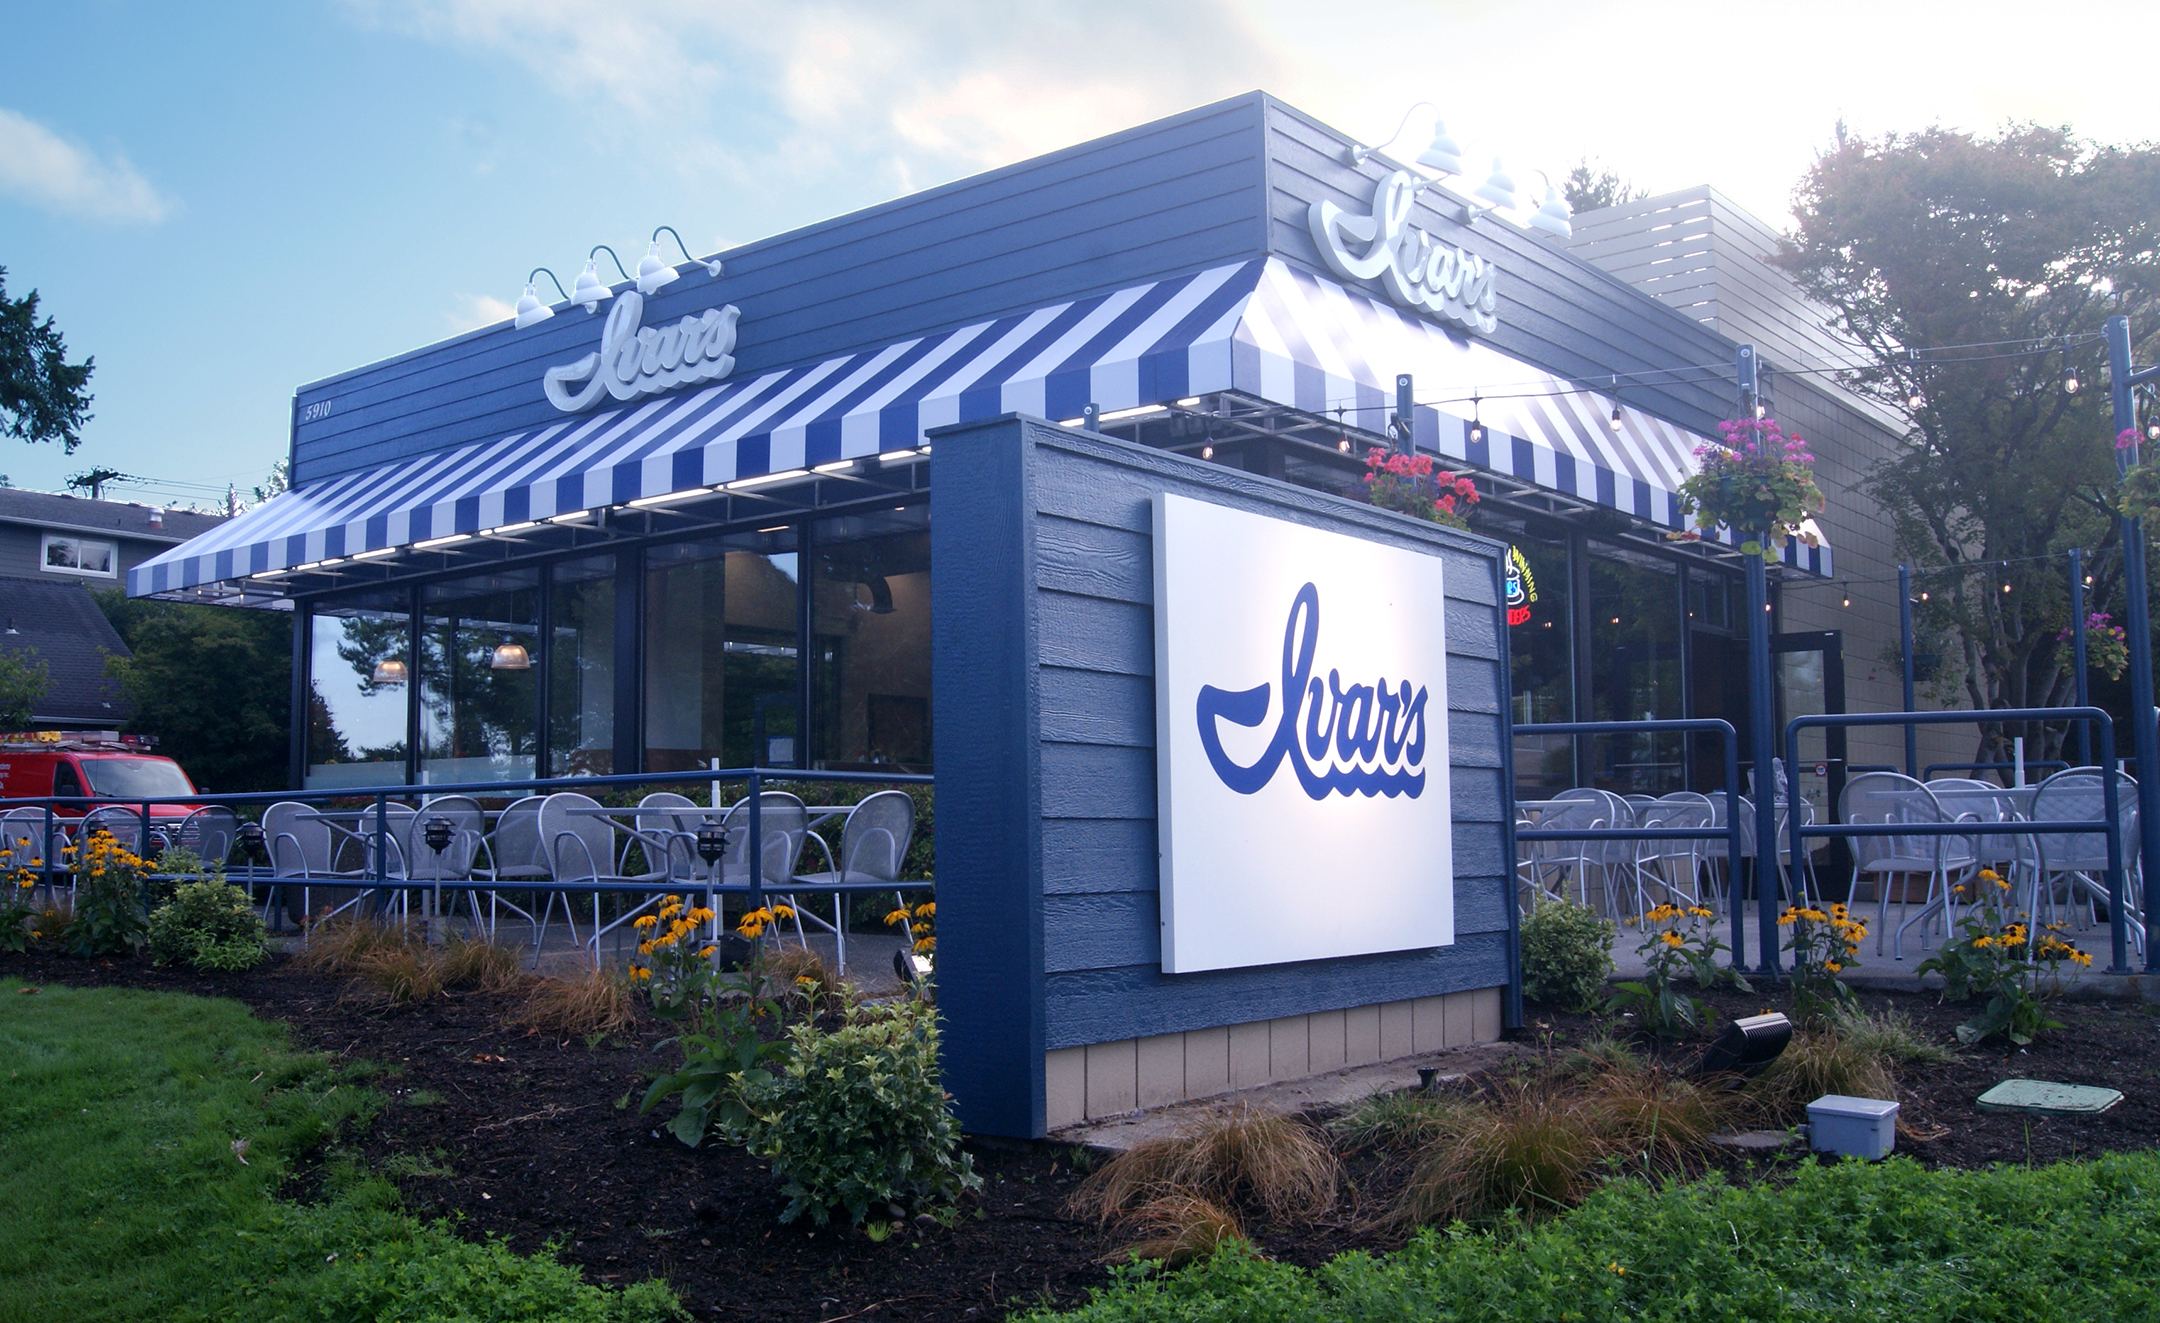 Seattle Icon Ivar's Opens Its New Seafood Bar Location in Kirkland Today